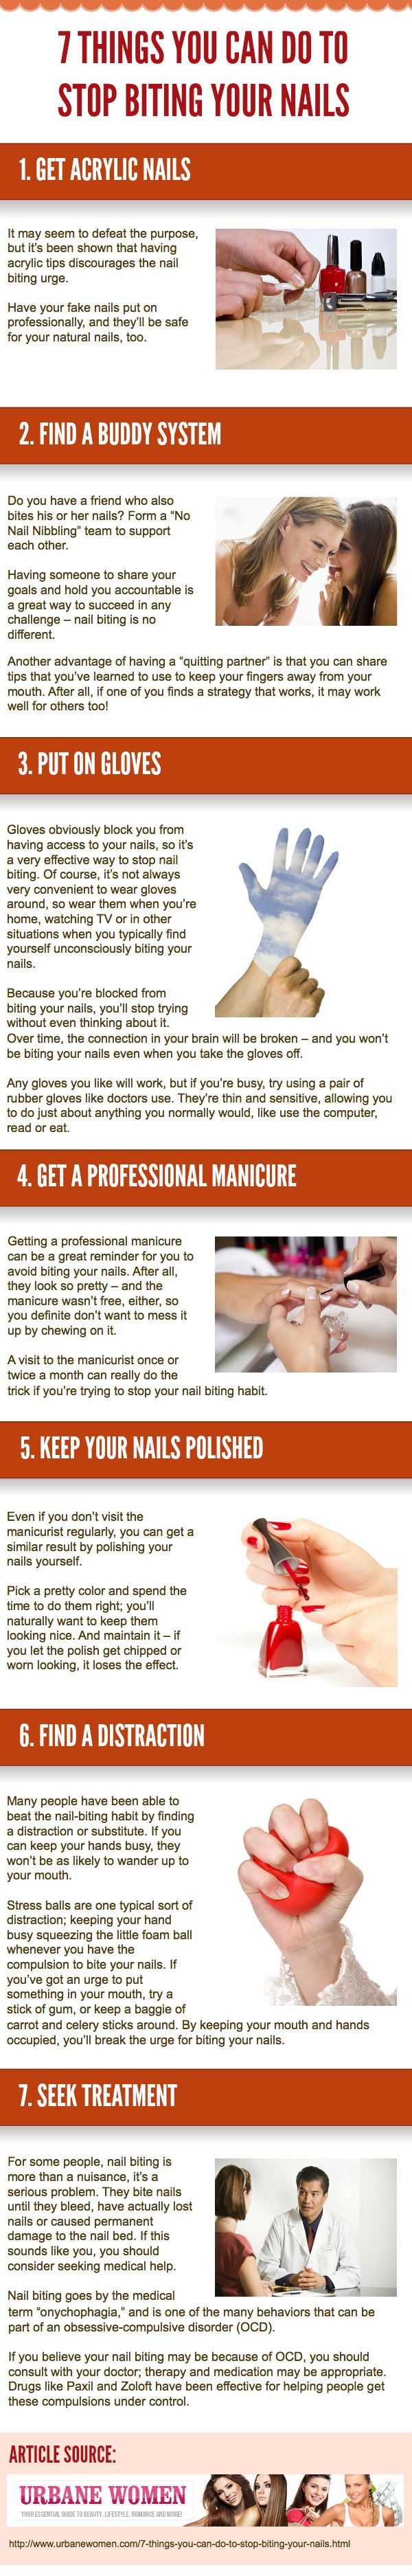 The 16 best nail biting images on Pinterest | Nail biting, Beauty ...